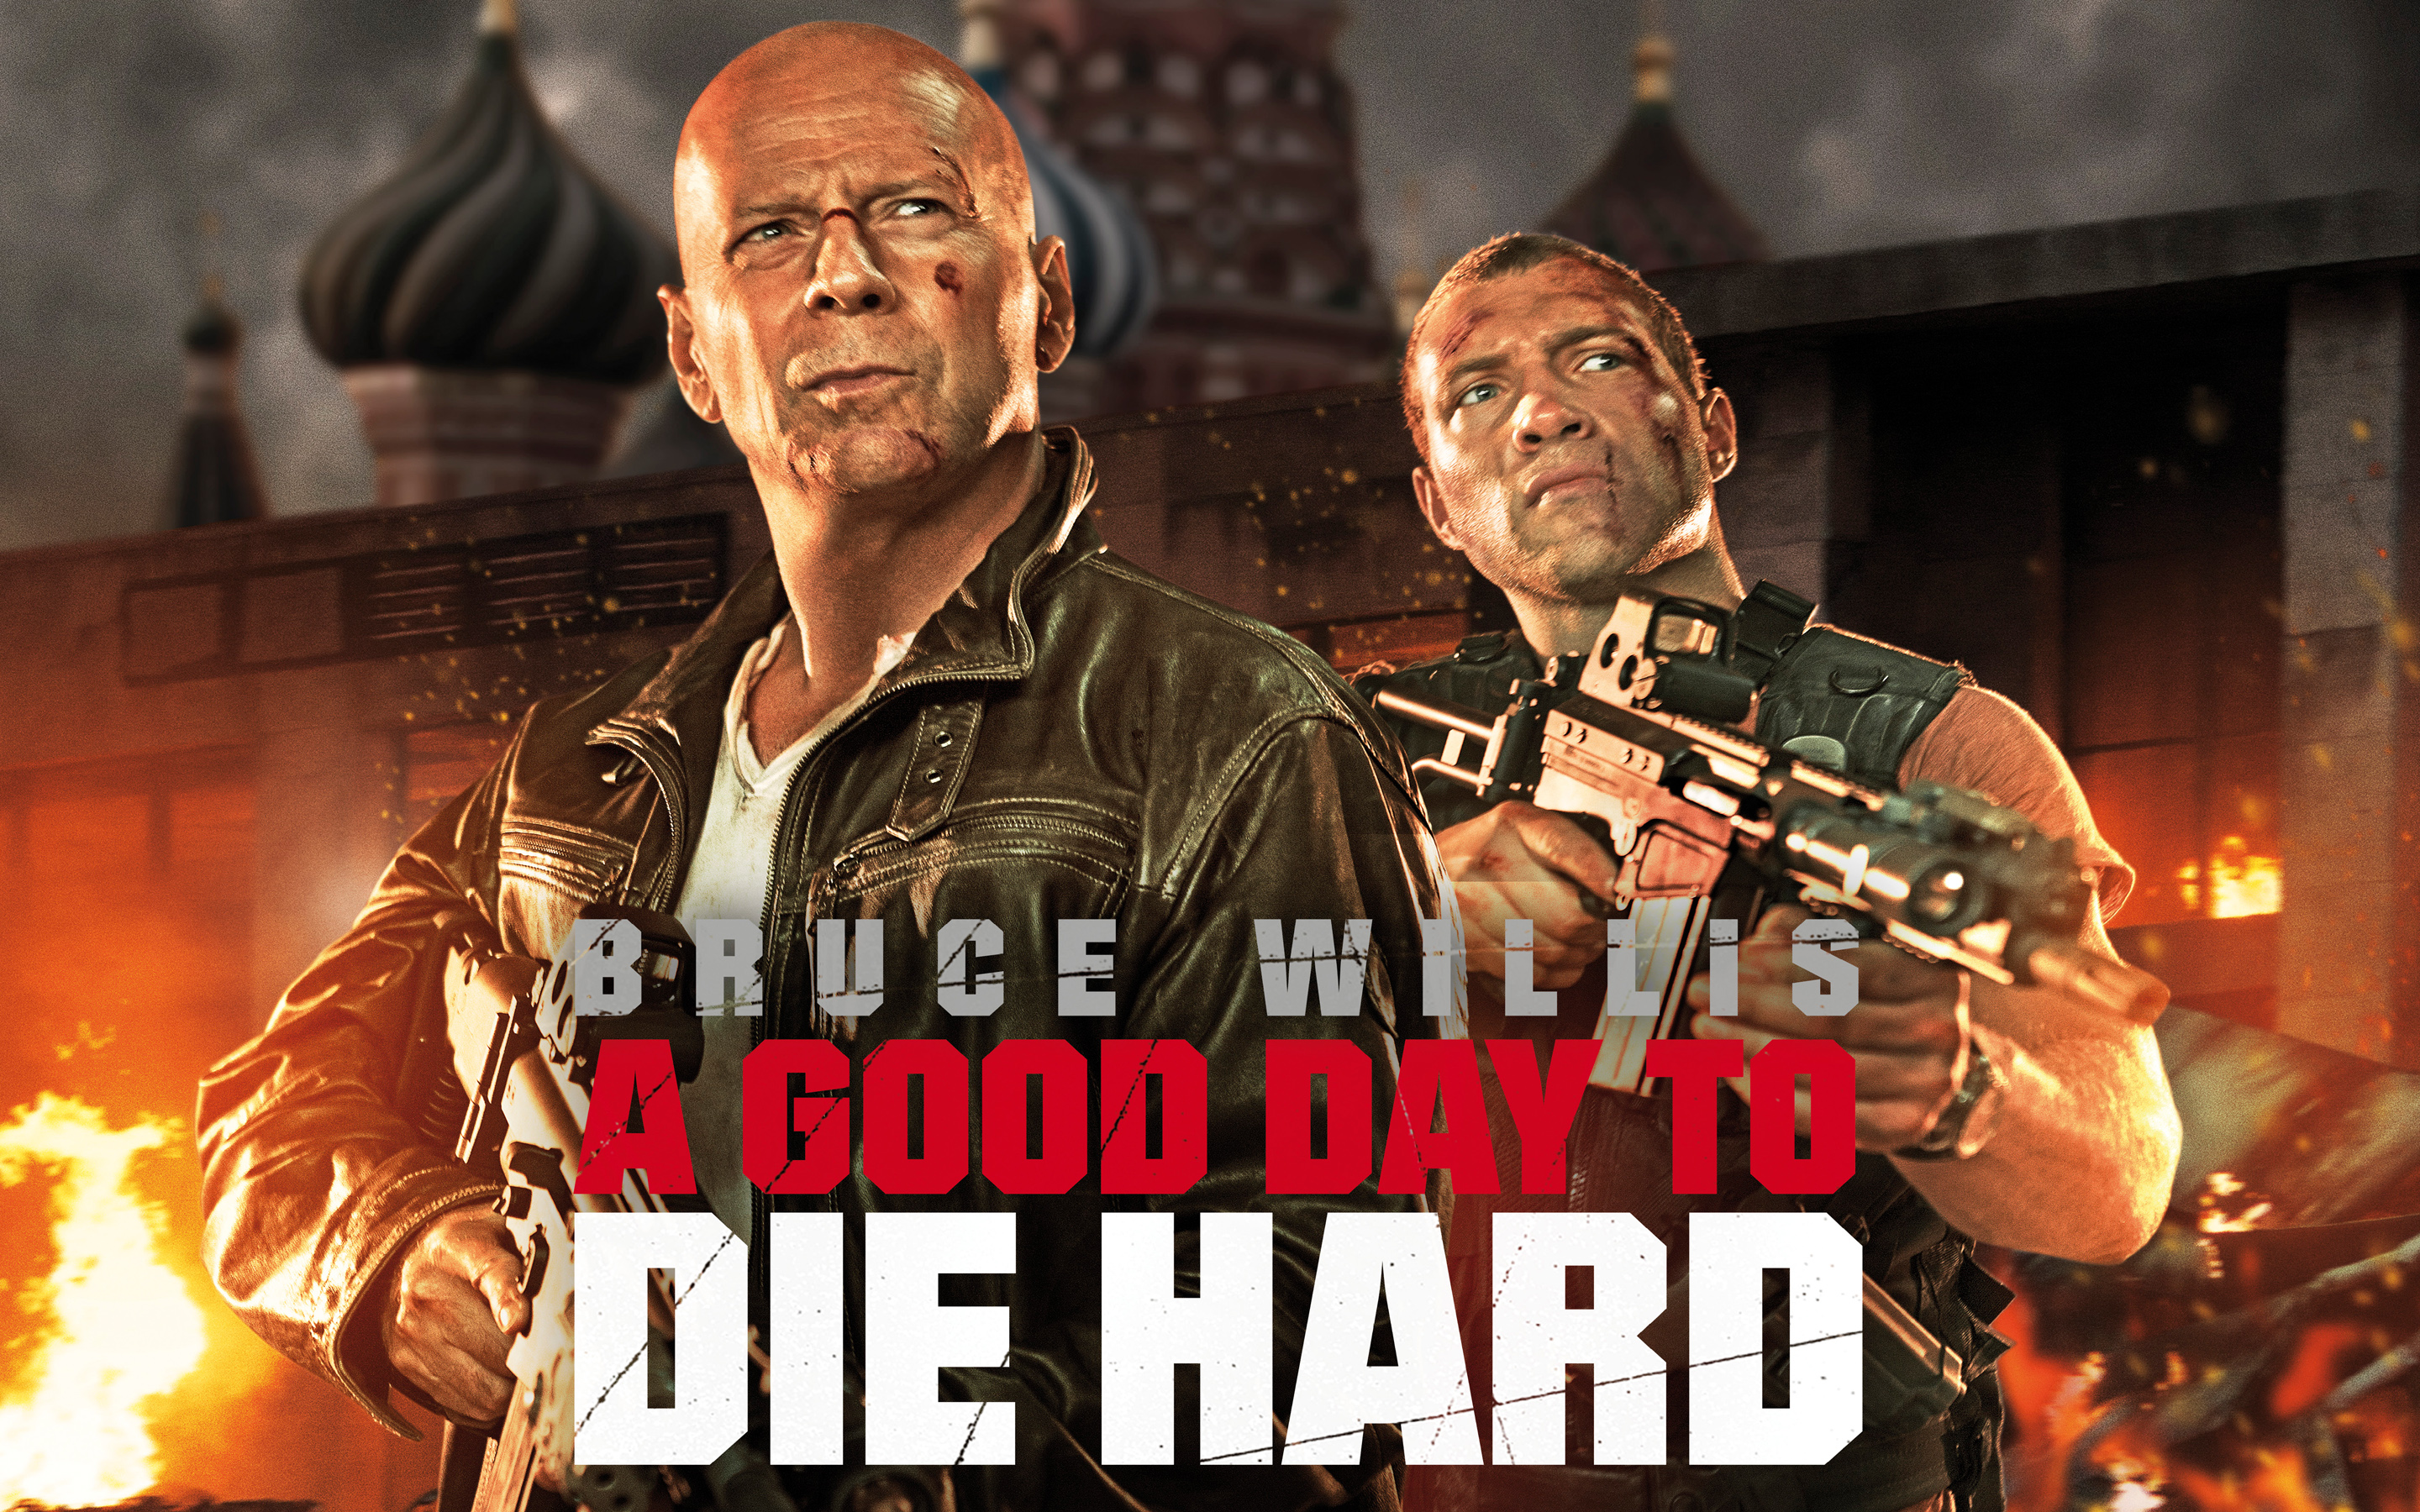 A Good Way To Die Hard 5 wallpaper